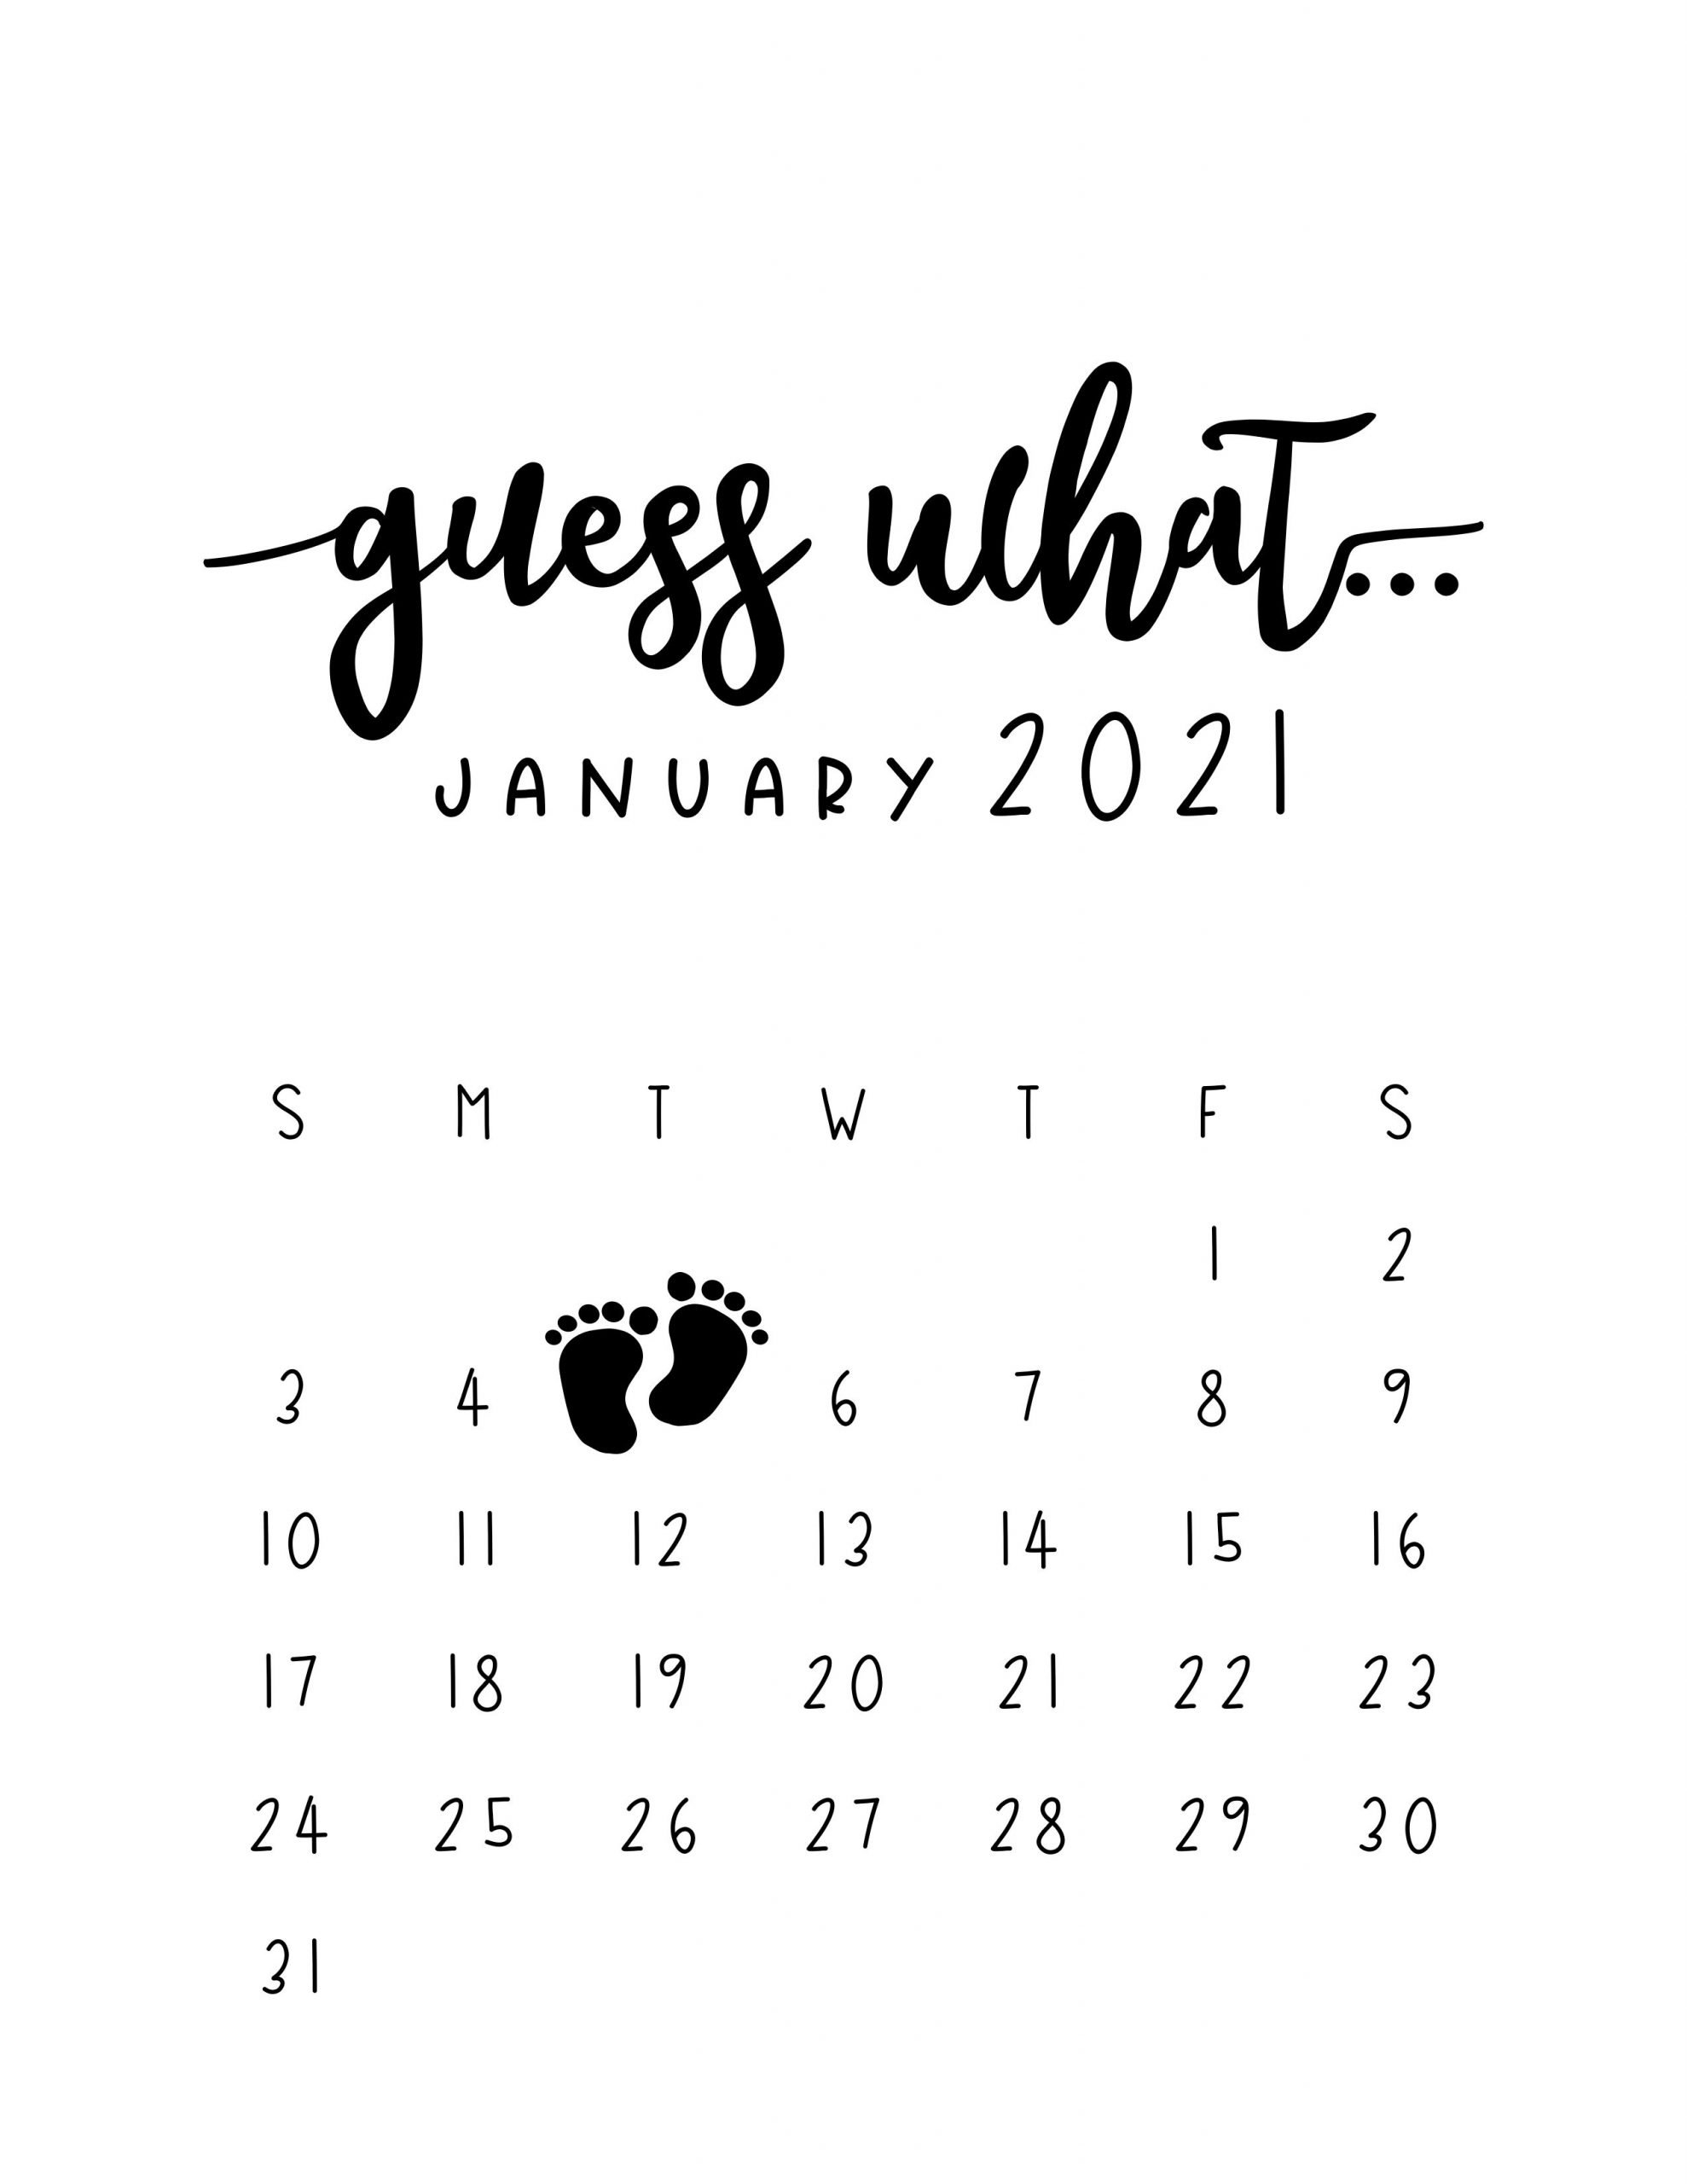 Pregnancy Announcement Calendar - Personalized Guess What How To Make Baby Due Date Calendar April 2020